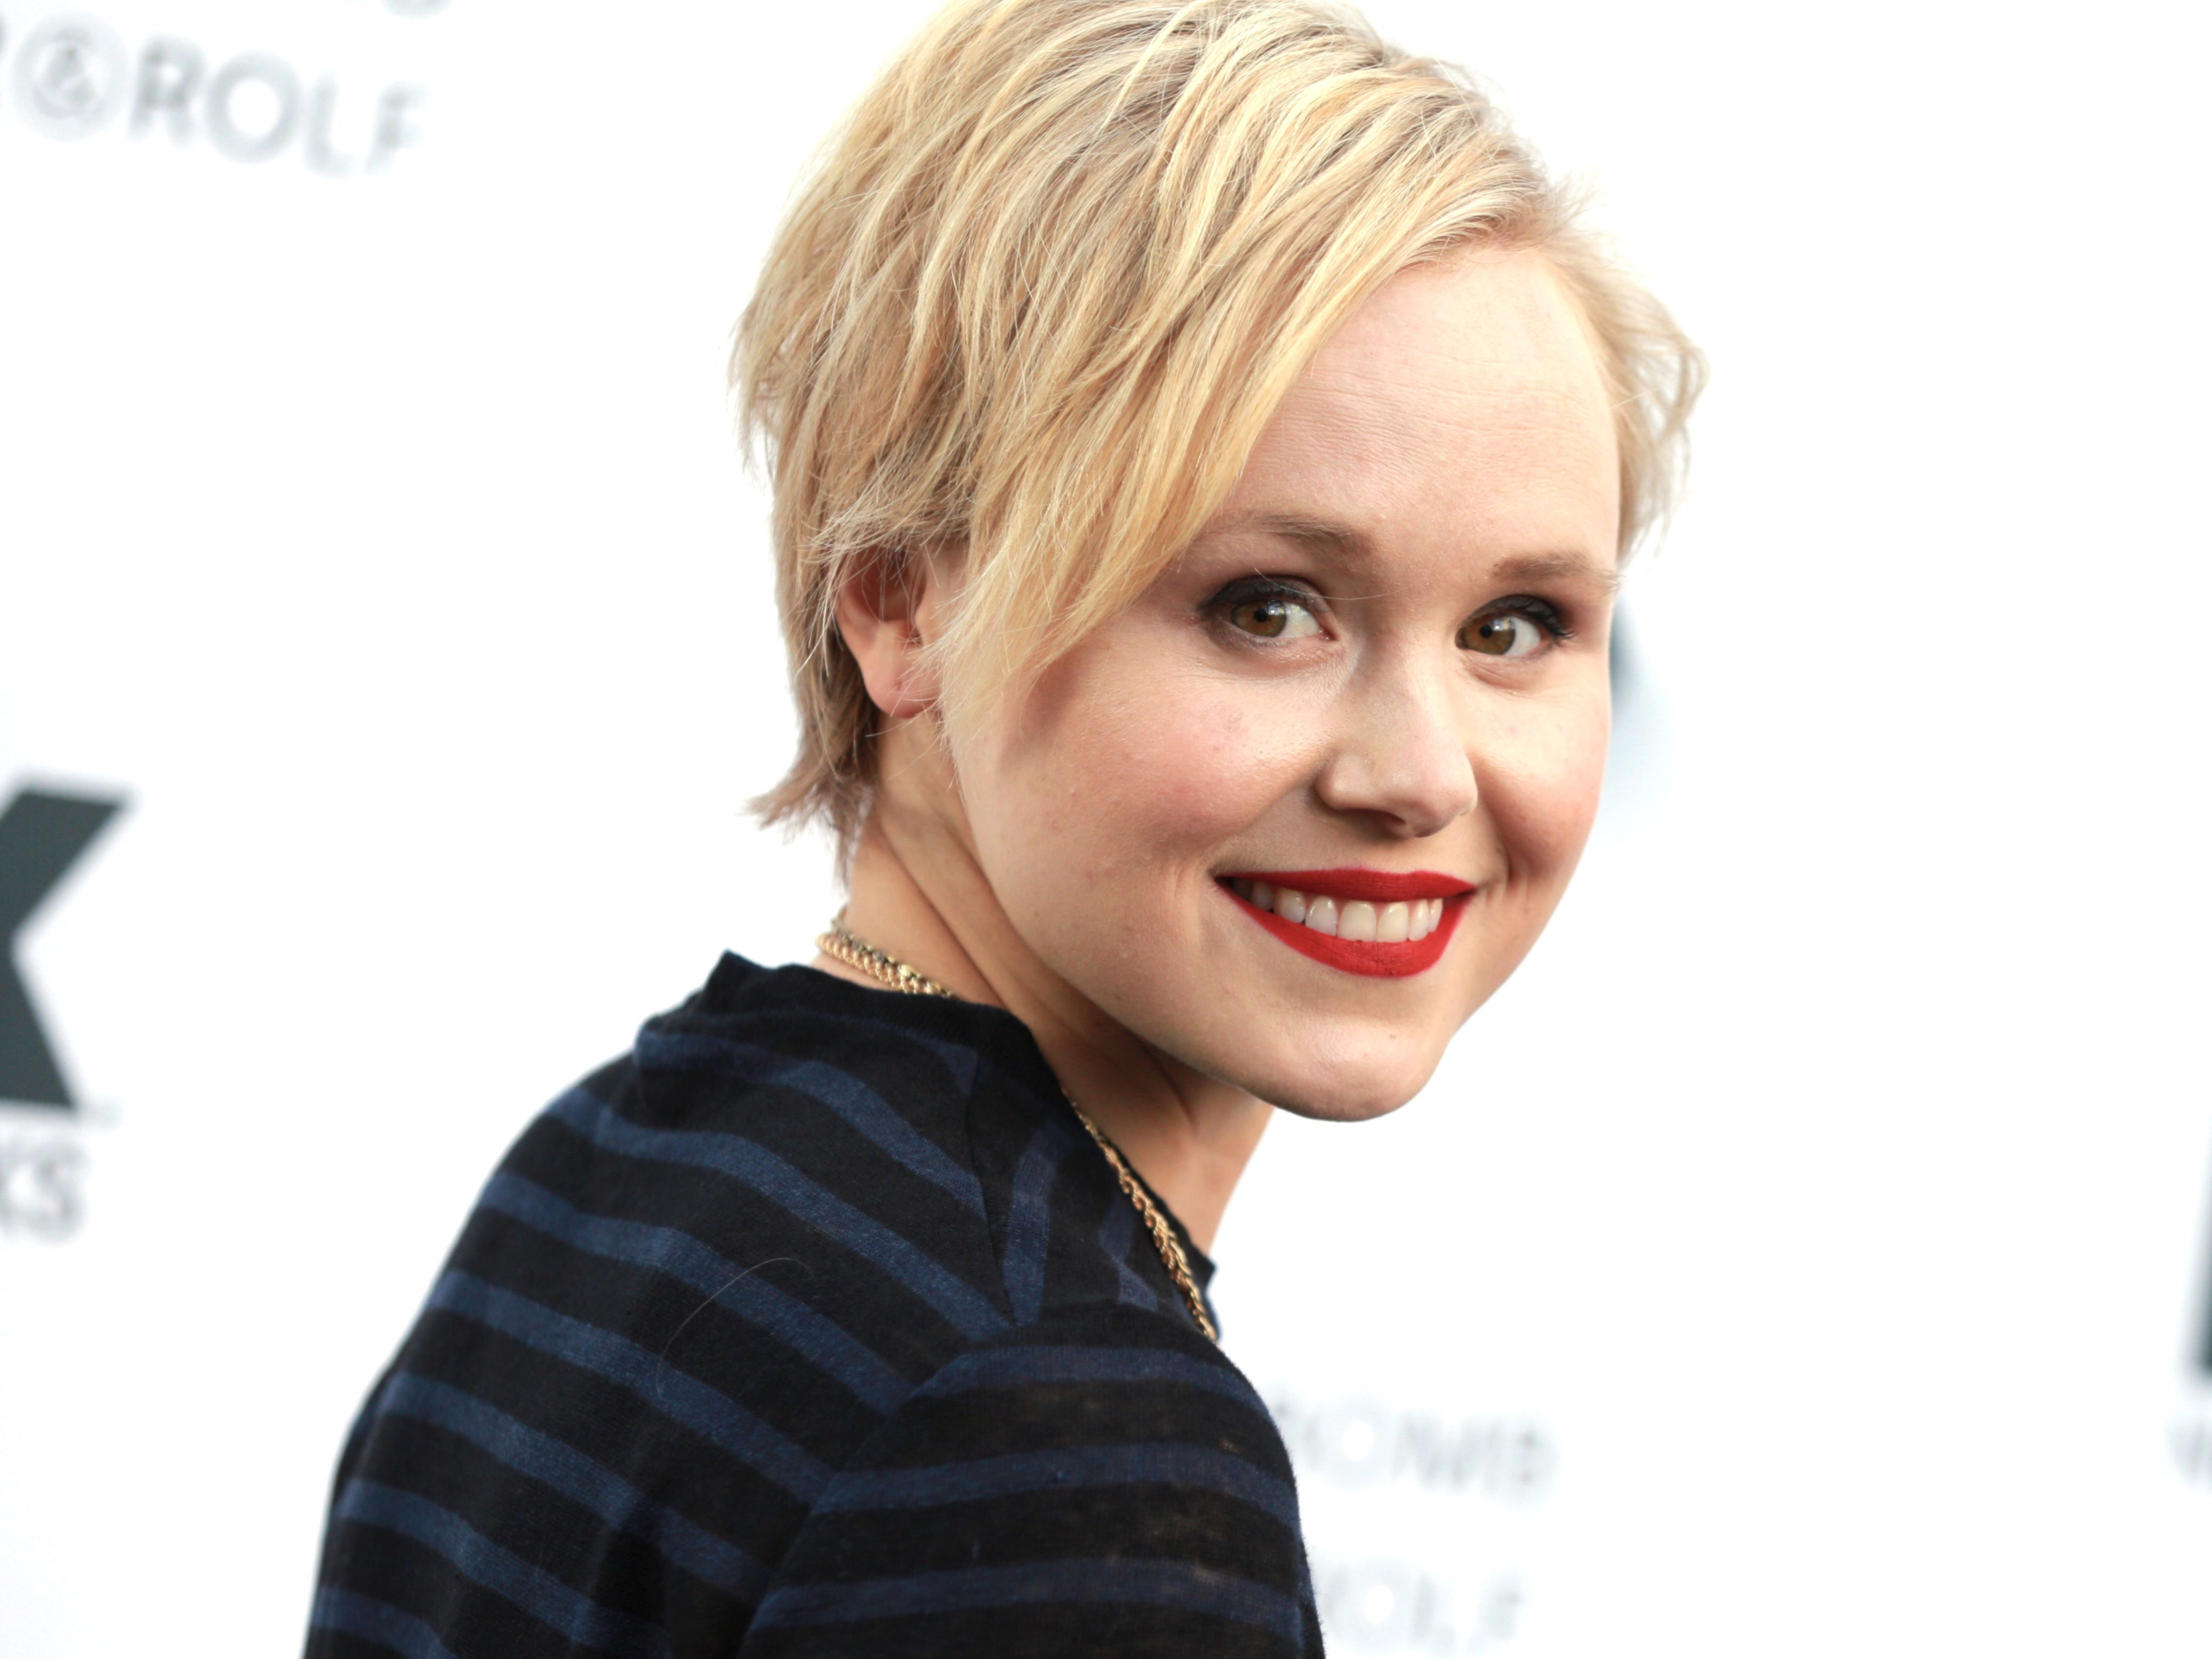 Selfie Alison Pill  nude (82 photos), Instagram, in bikini